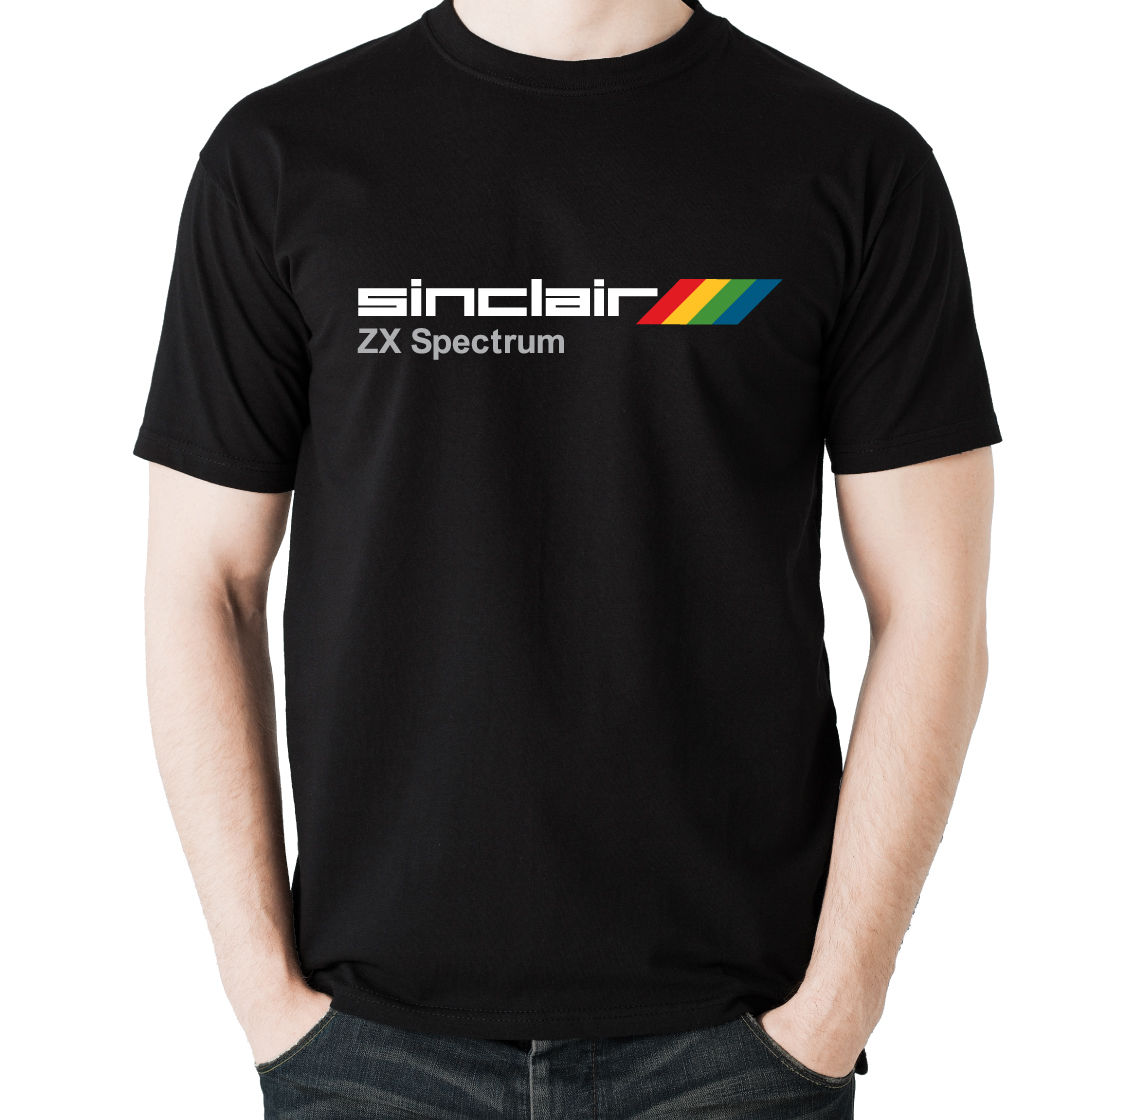 Tee   Shirts   Personality Inspired By Sinclair Zx Spectrum Gray Men   T  -  Shirt   Full   T     Shirt   For Mens